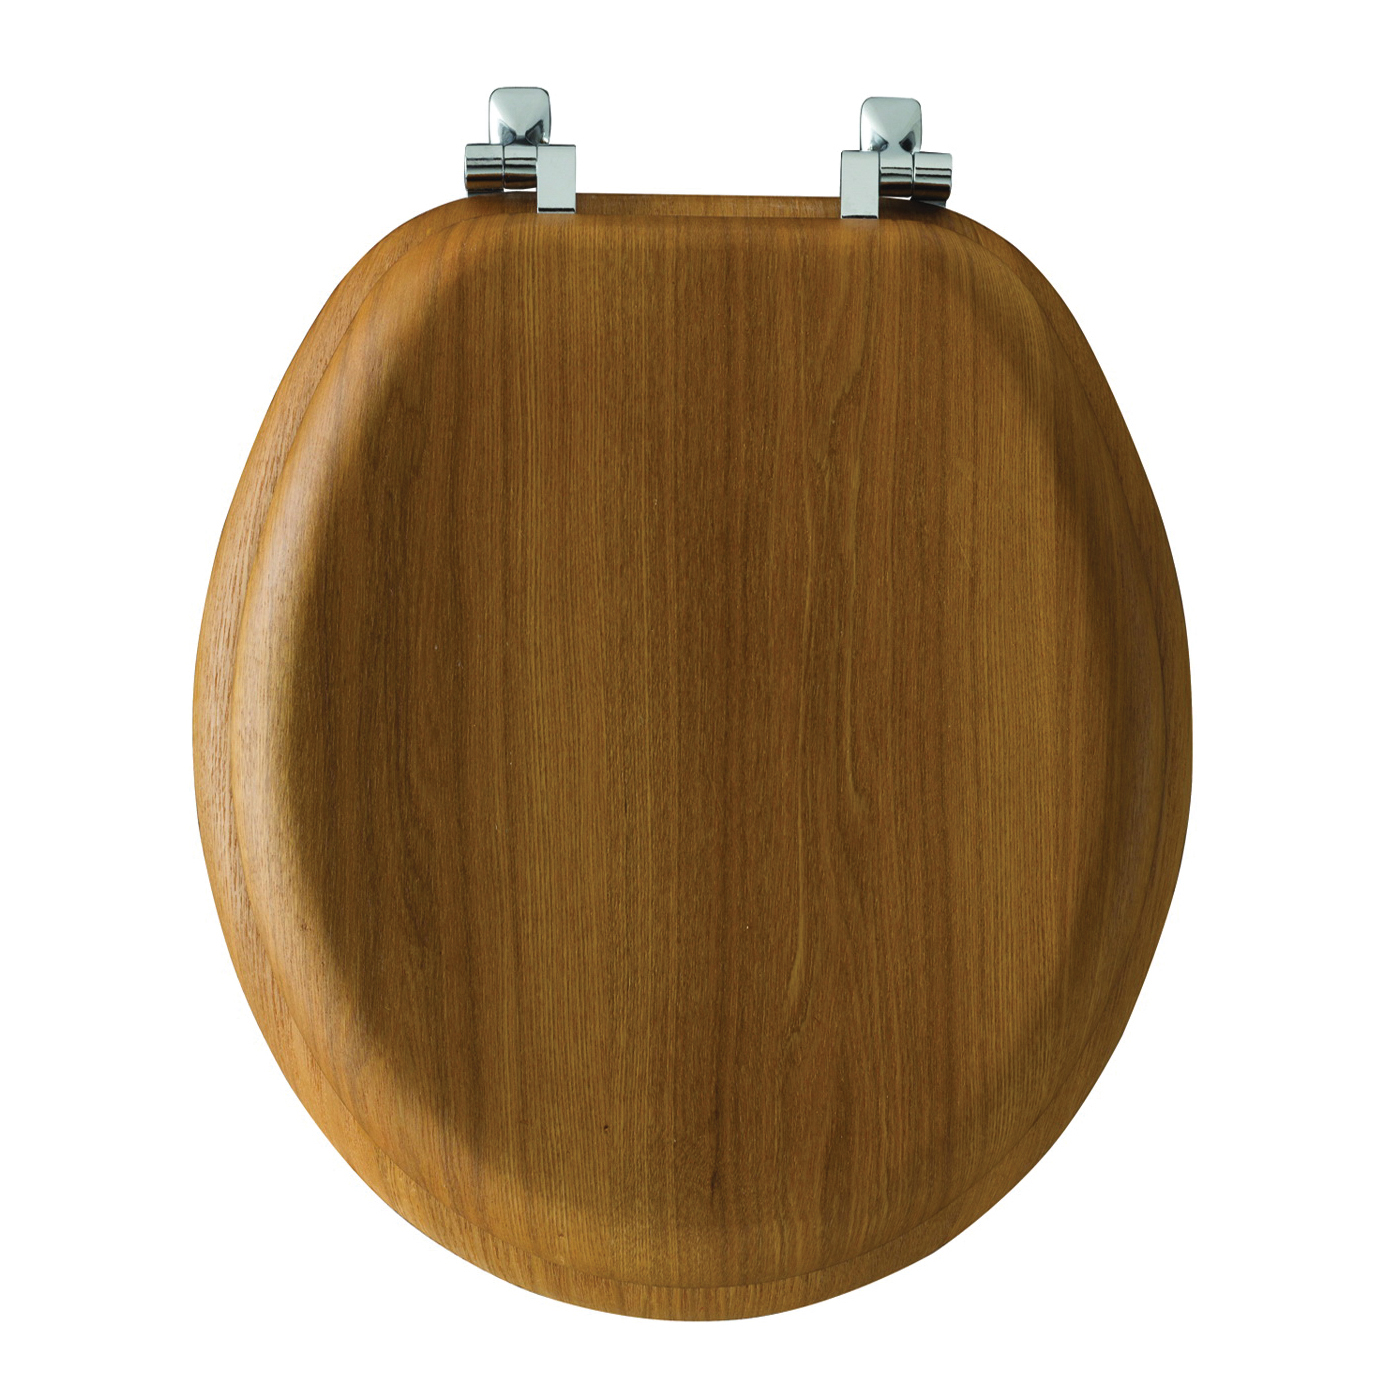 Picture of BEMIS Natural Reflections 19601CP378 Toilet Seat, Elongated, Wood Veneer, Natural Oak